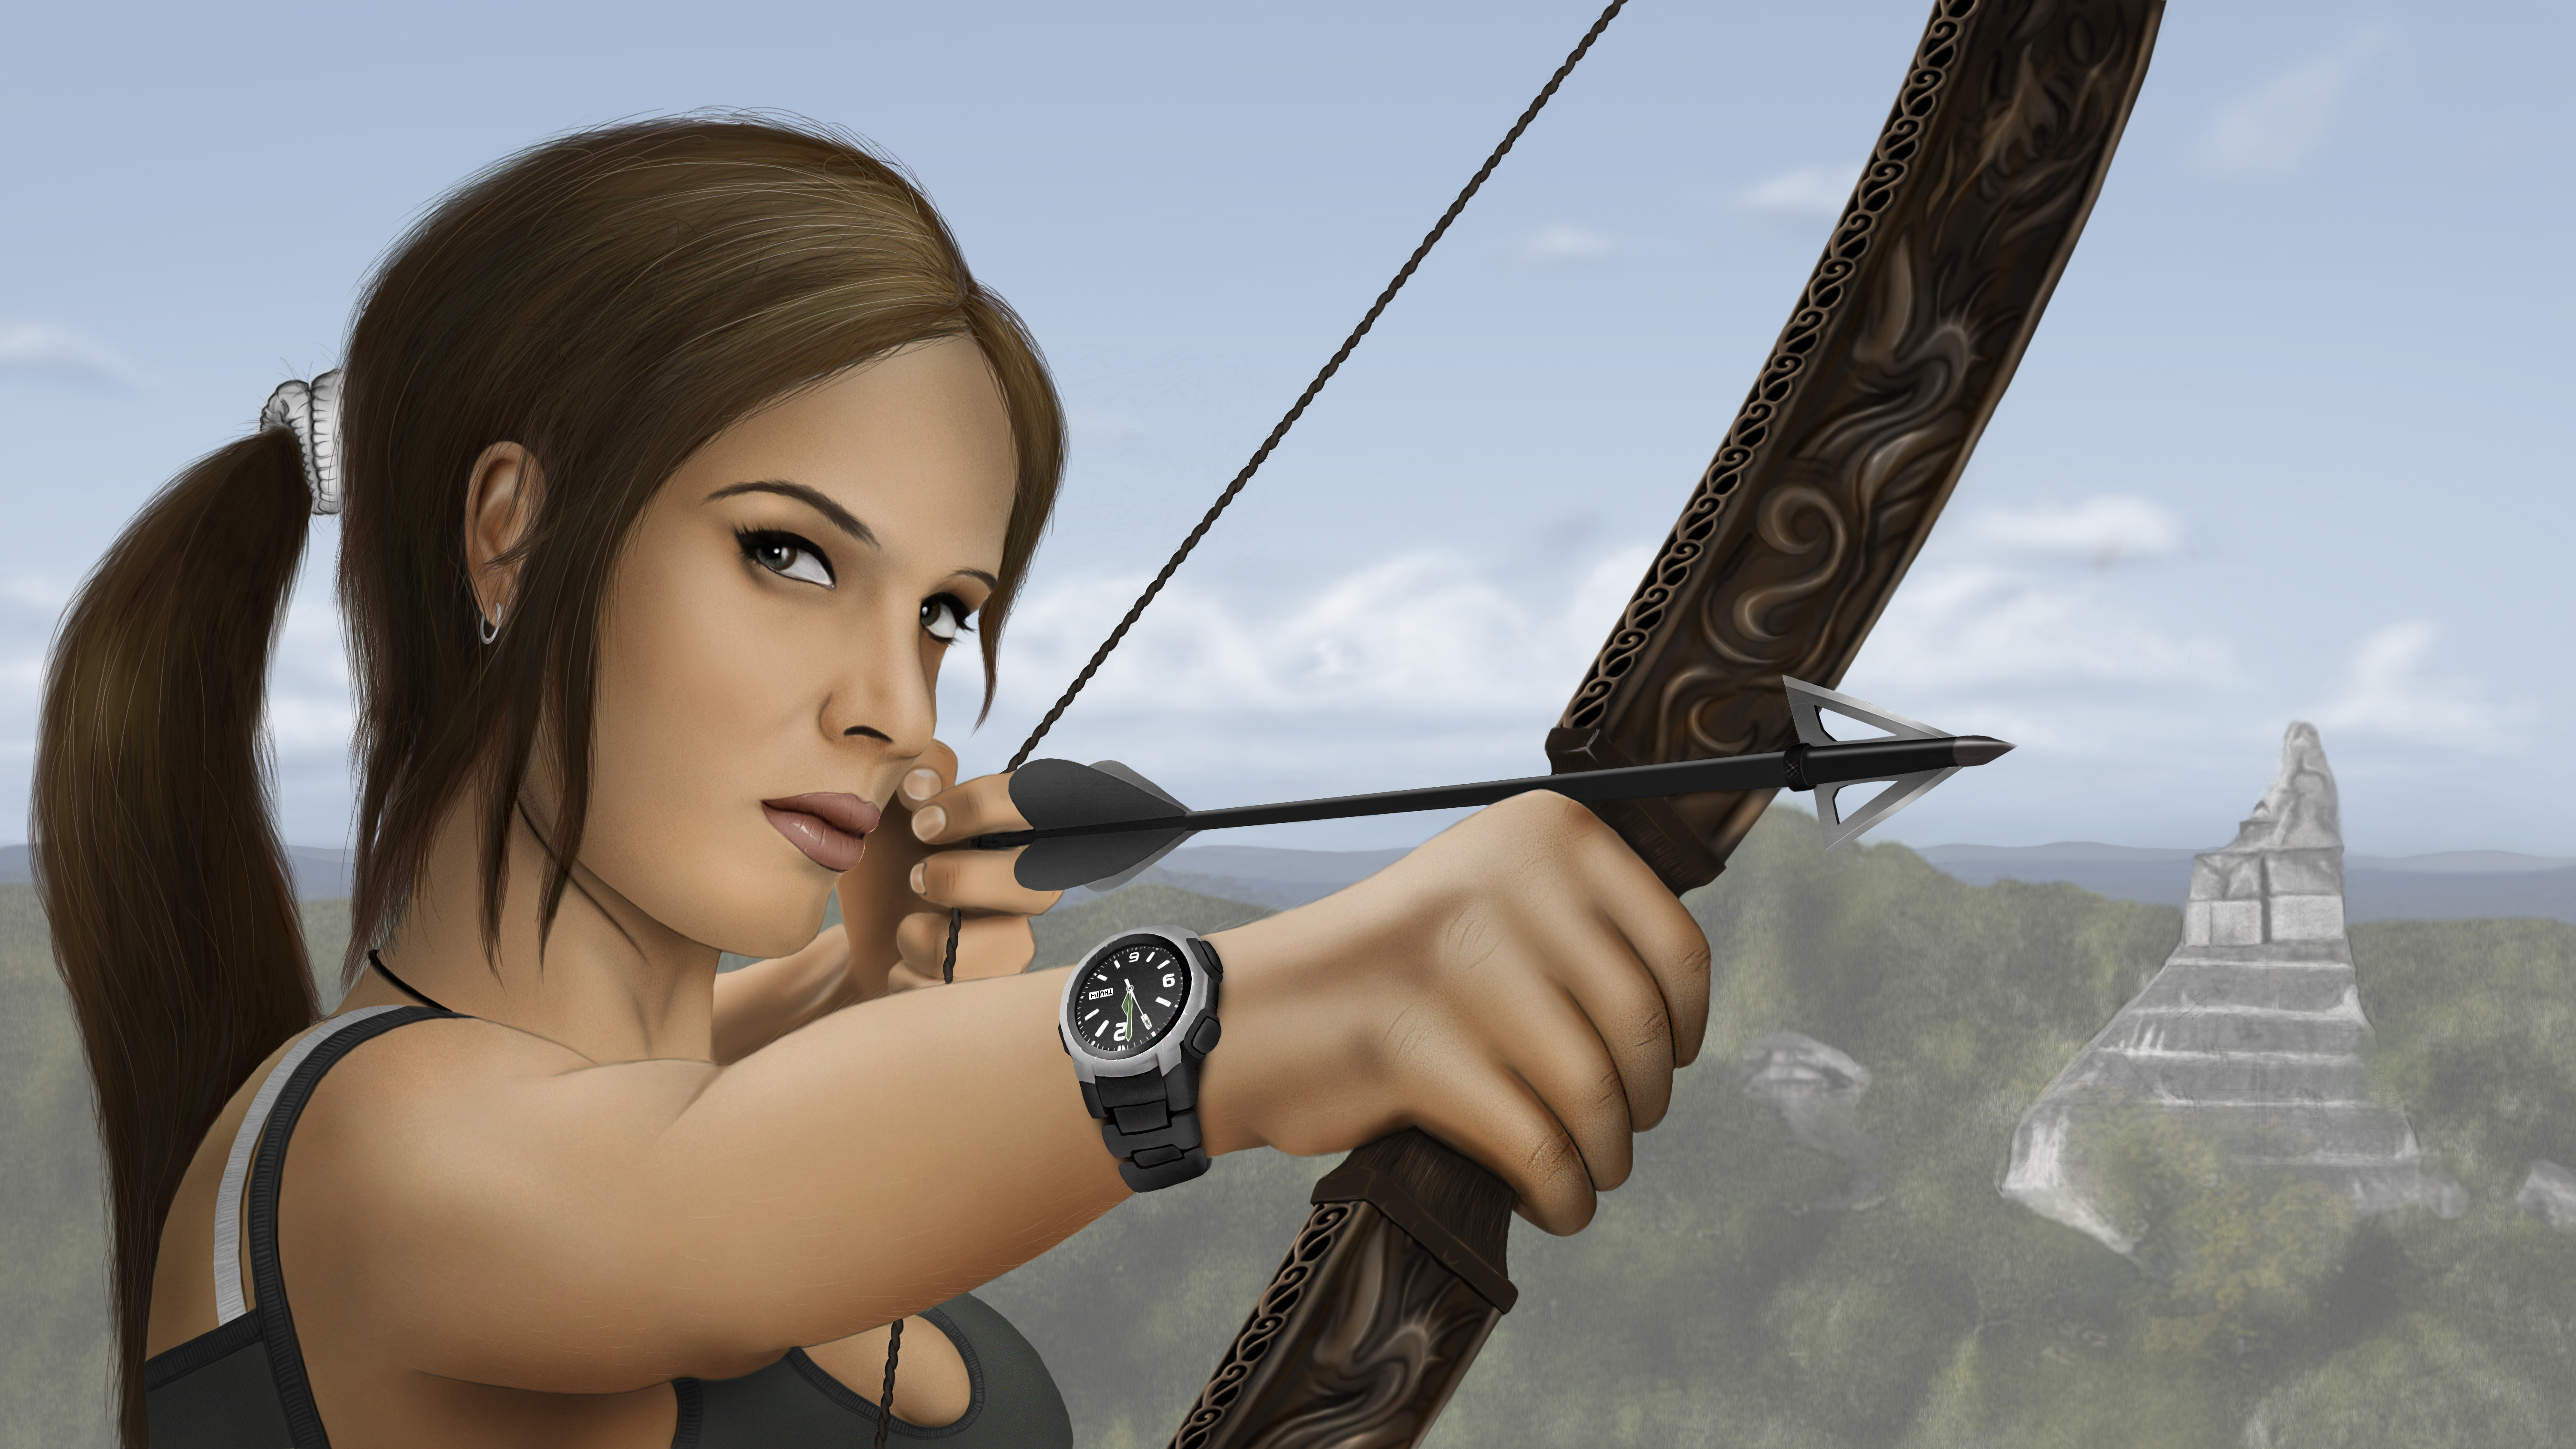 Laura croft pussy pics hentai pictures